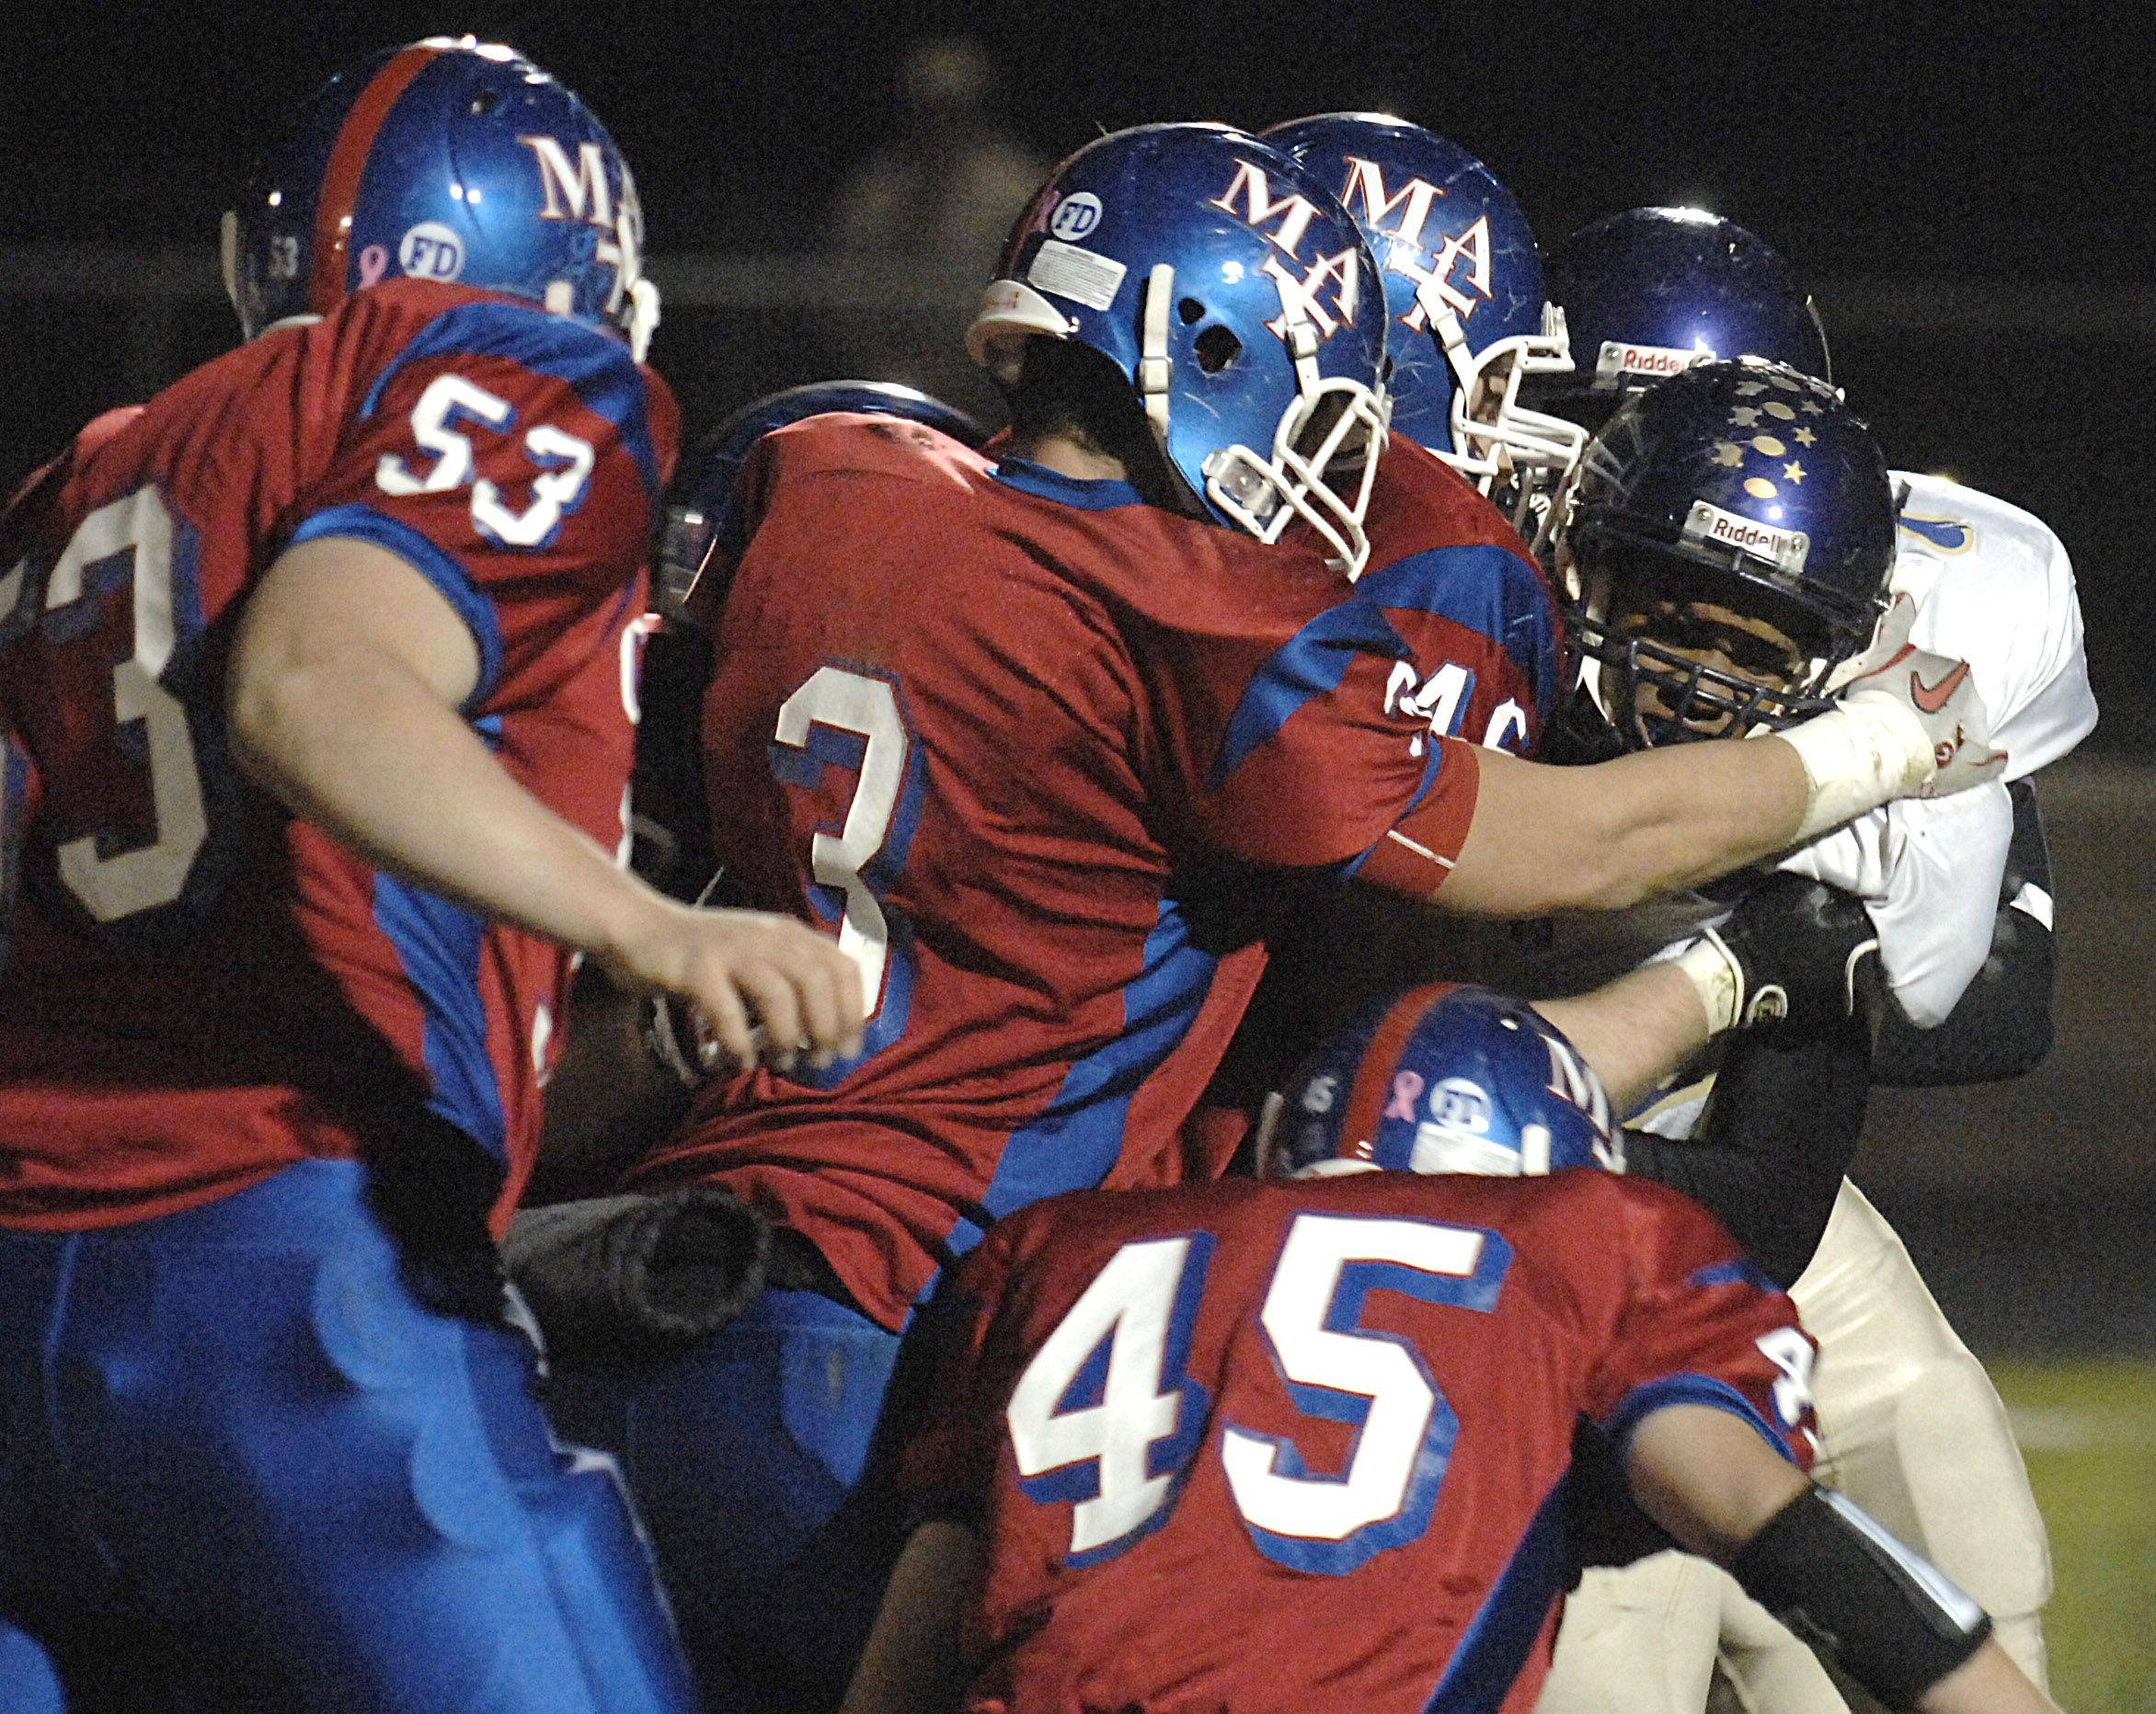 Marmion's Nick Scoliere and T.J. Lally sack Thorton Fractional North quarterback Calvin Lindsey as he attempts a run in the second quarter on Friday, October 29.